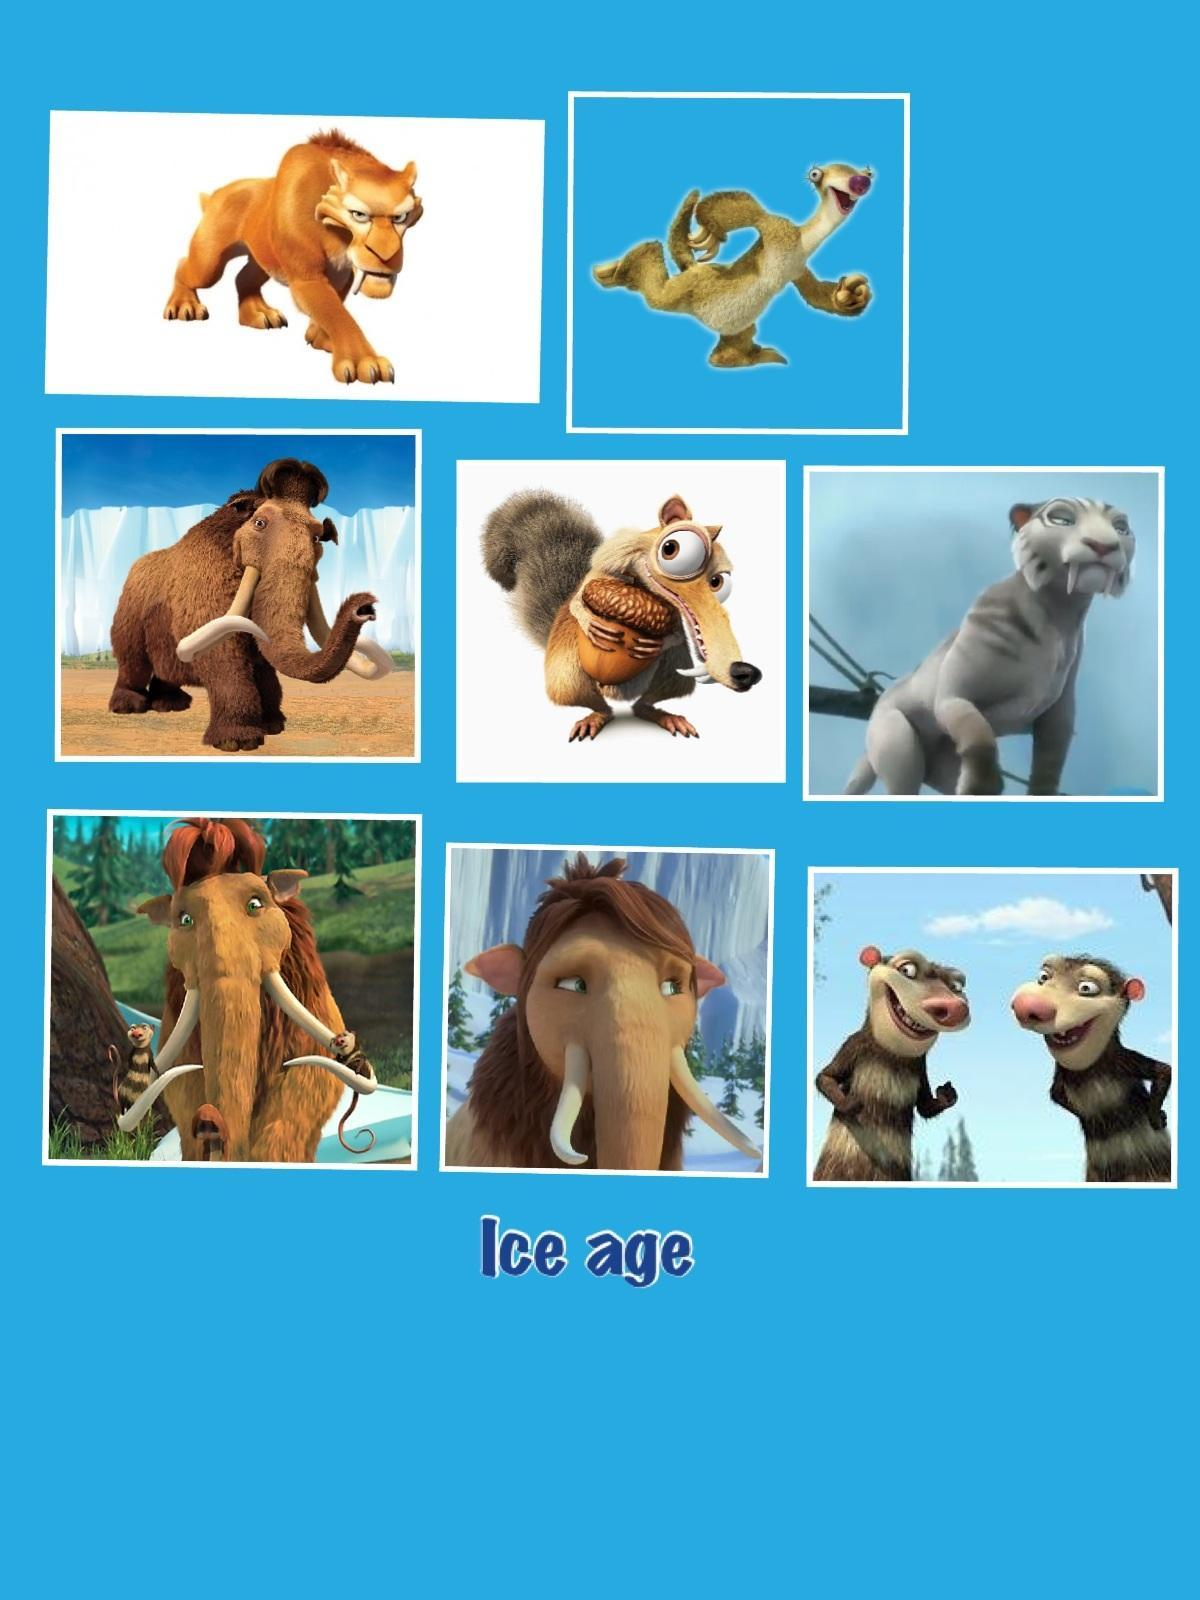 What ice age character are you